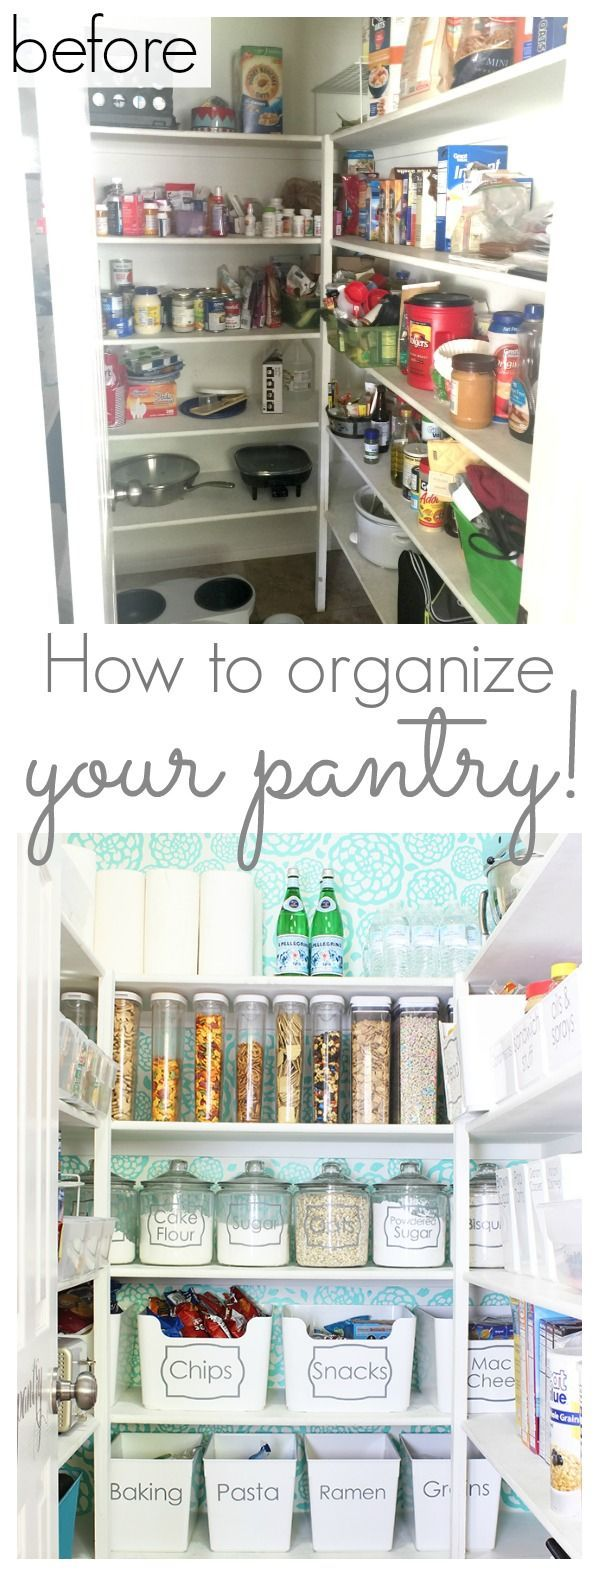 cool How to Organize your Pantry and a Pretty Pantry Makeover - Classy Clutter by http://www.top21homedecorideas.xyz/kitchen-decor-designs/how-to-organize-your-pantry-and-a-pretty-pantry-makeover-classy-clutter/